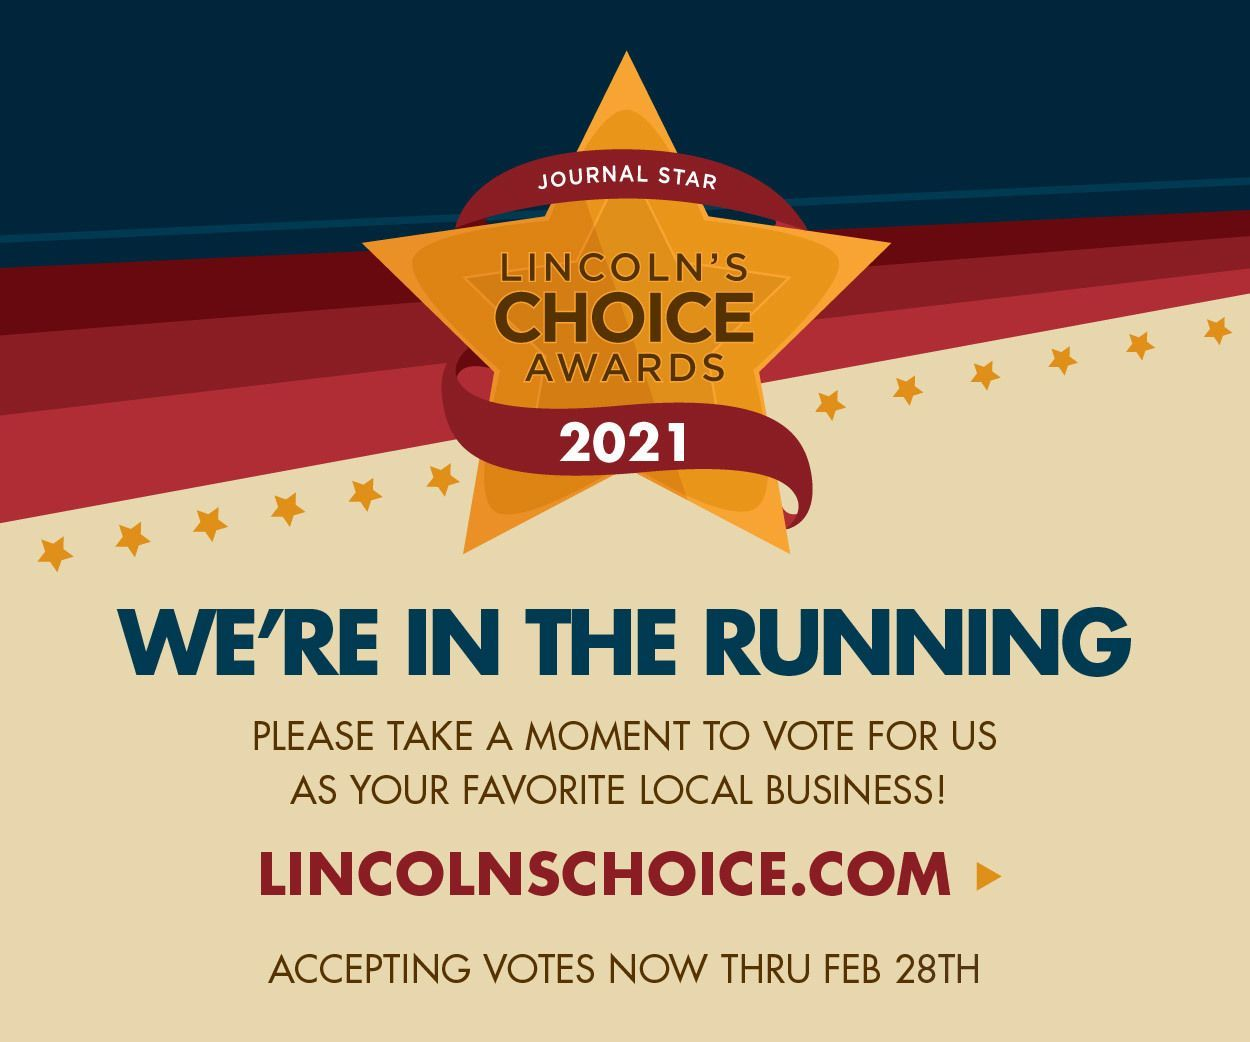 Vote Tabitha Daily for Lincoln's Choice Awards